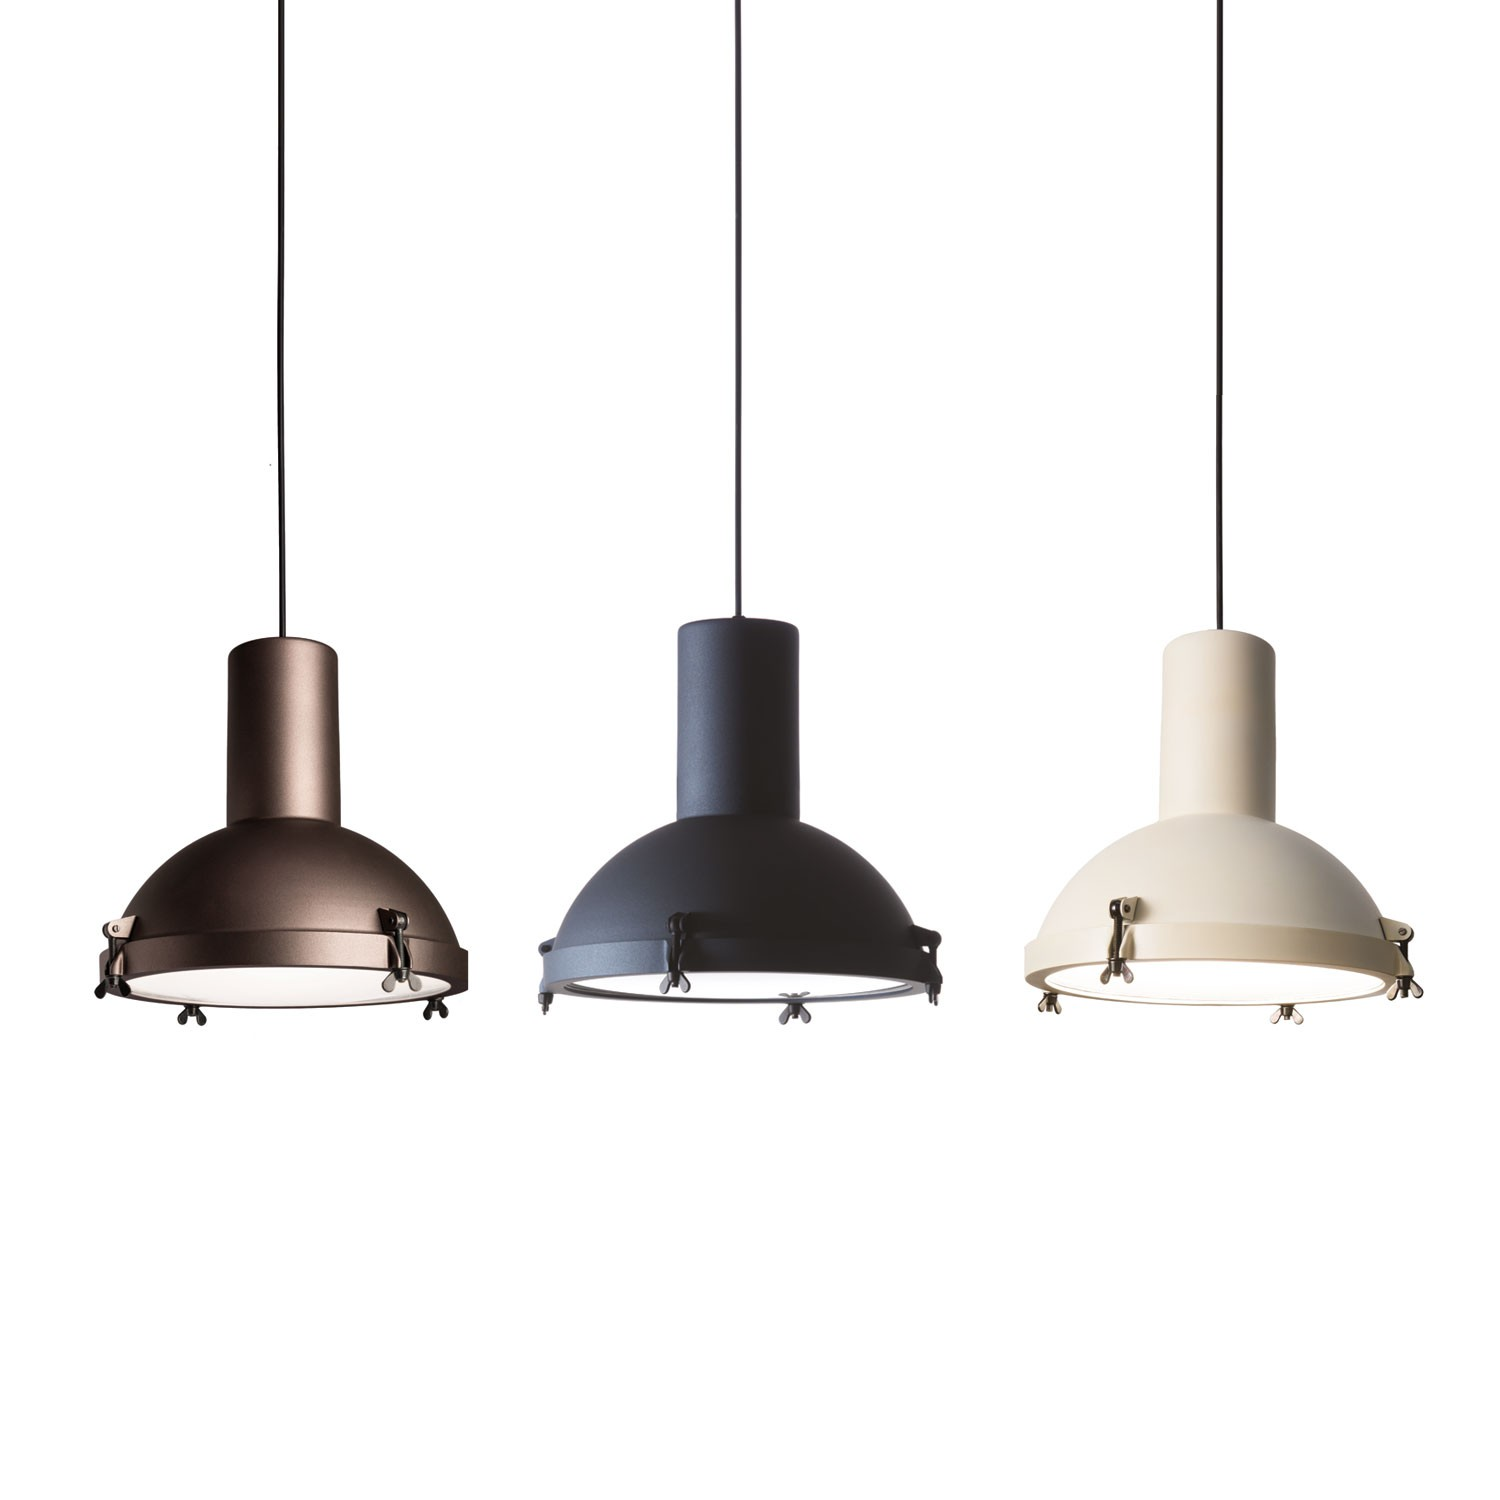 PROJECTEUR 365 suspension lamp